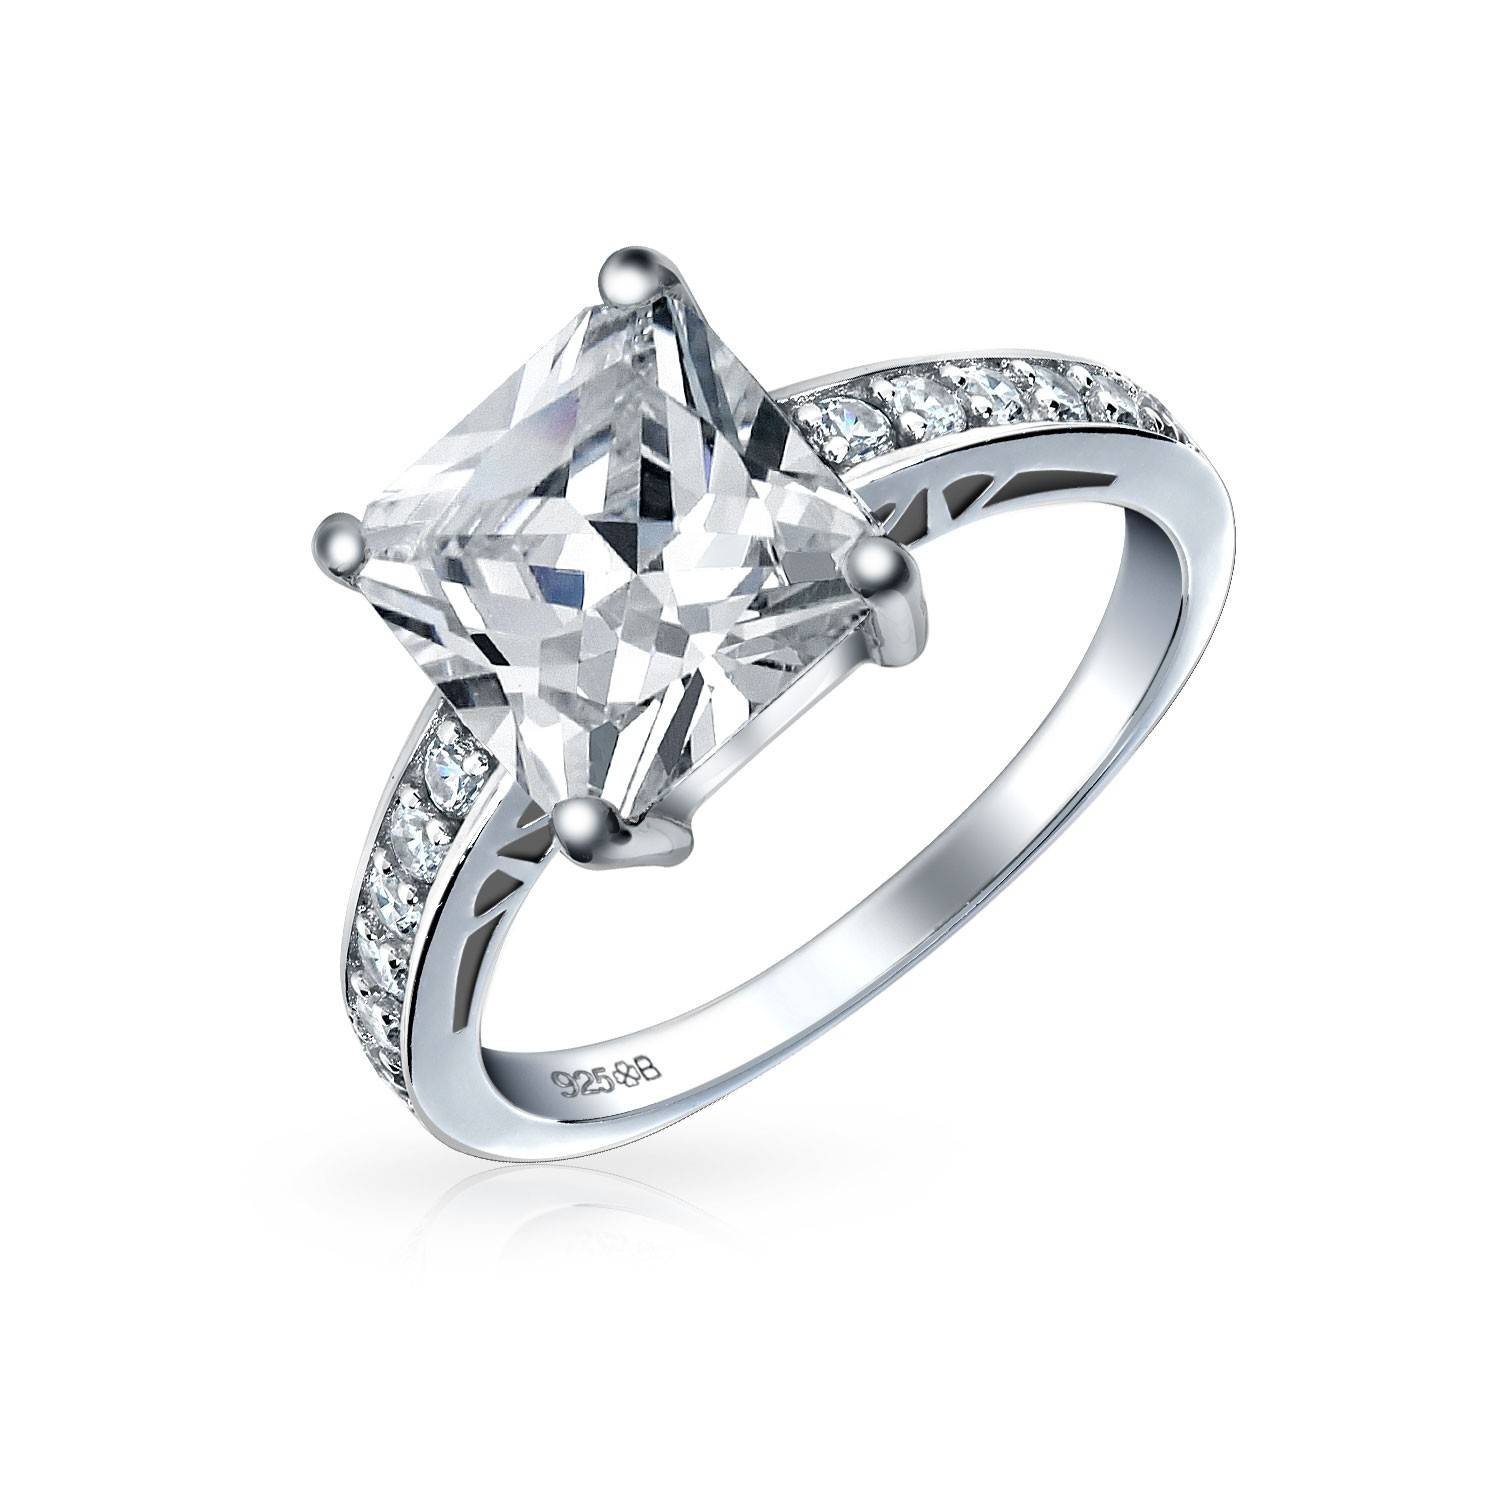 Sterling Silver 2.9 Ct Princess Cut Cz Engagement Ring Pertaining To Silver Princess Cut Diamond Engagement Rings (Gallery 3 of 15)